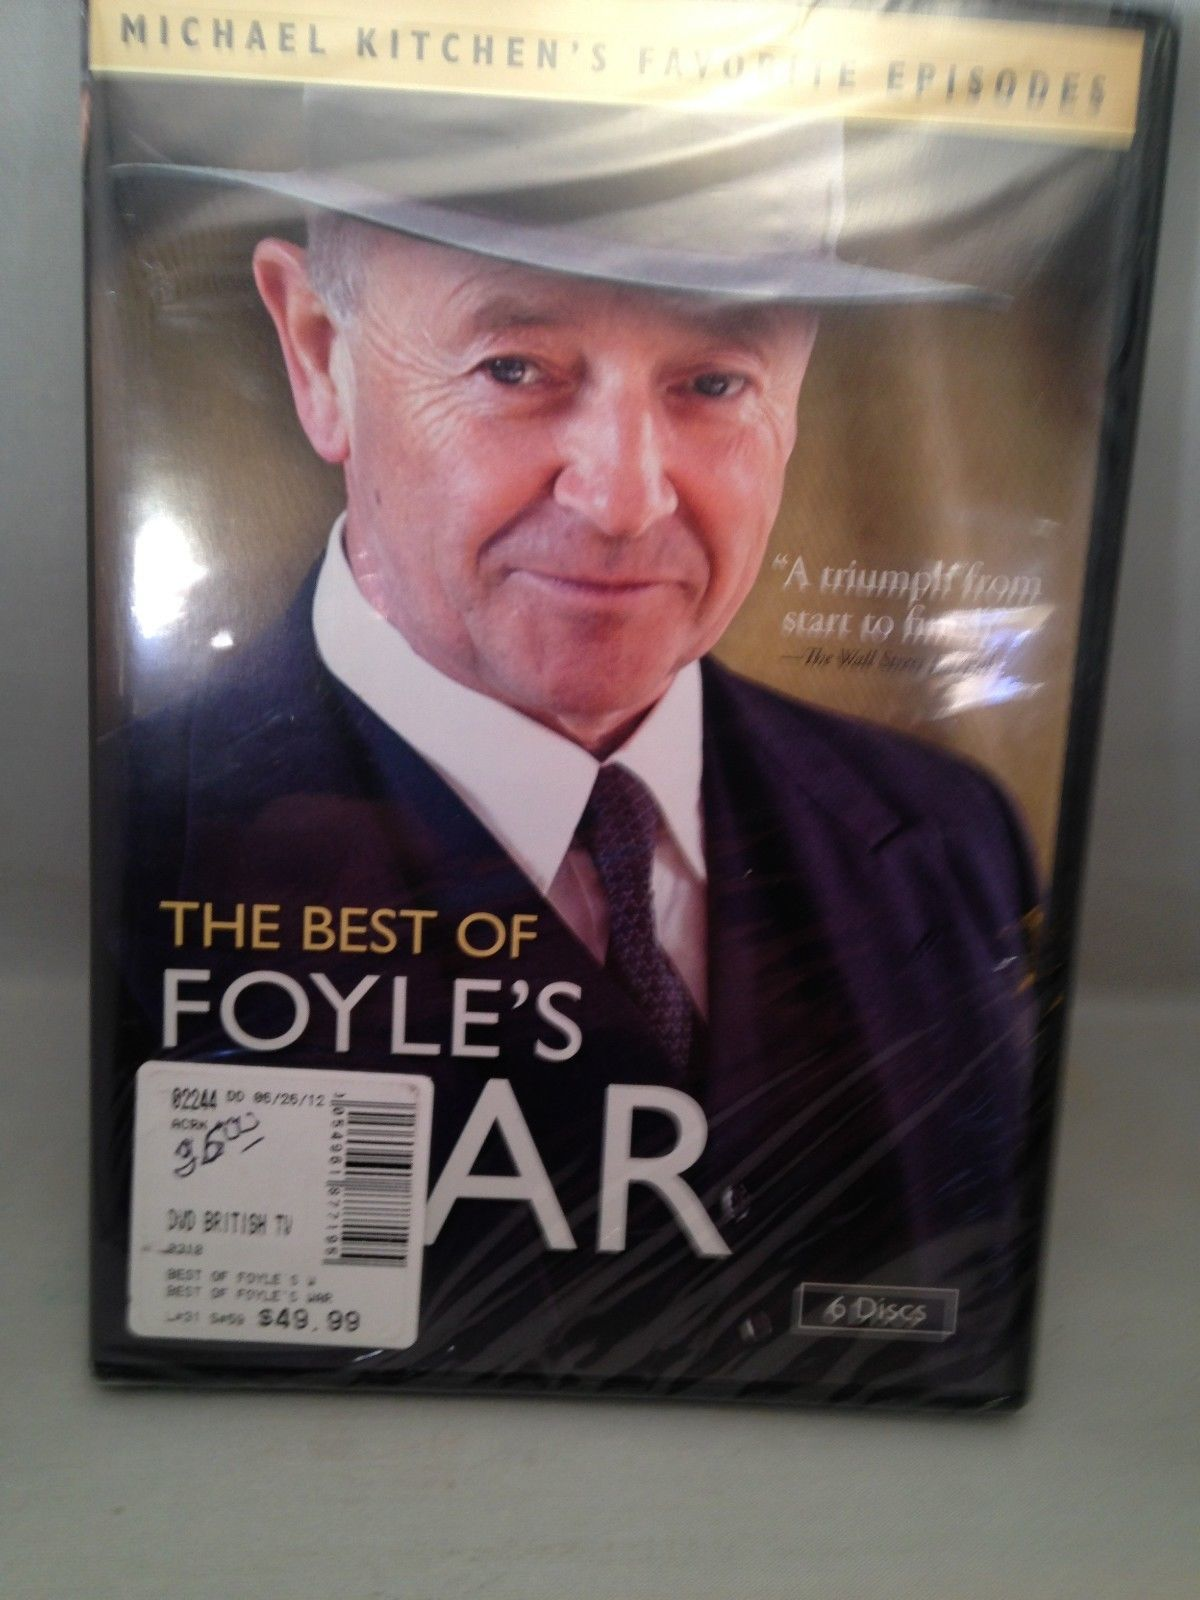 The Best of Foyle's War - 6 Discs DVDs New in Shrink Wrap